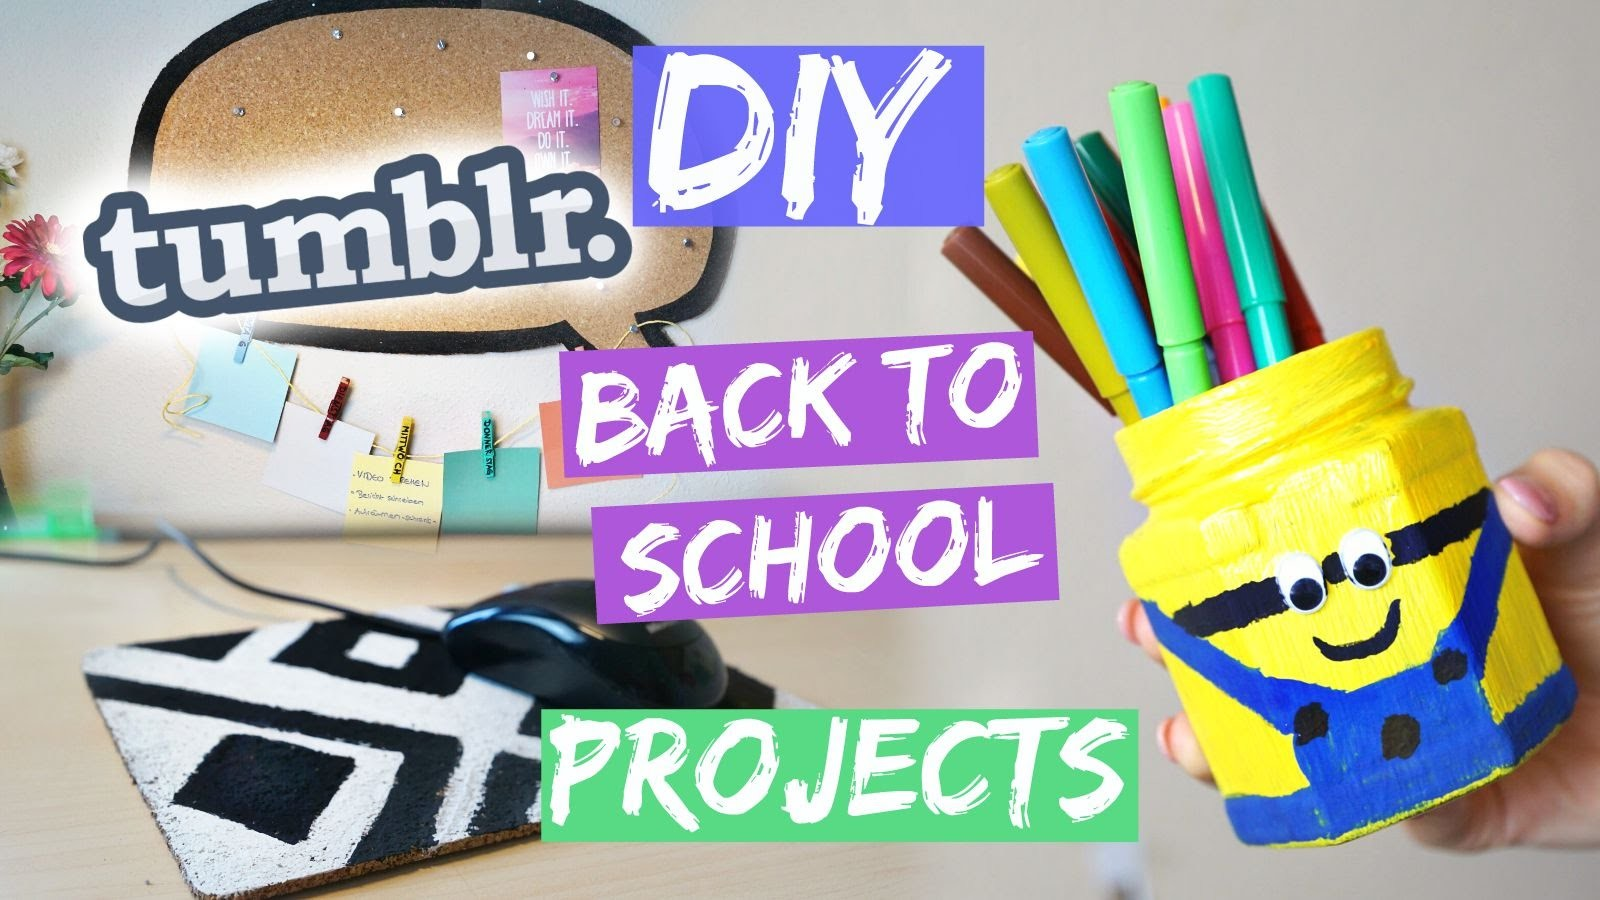 DIY BACK TO SCHOOL PROJECTS - Minion Pen Holder, Mousepad & MEHR!